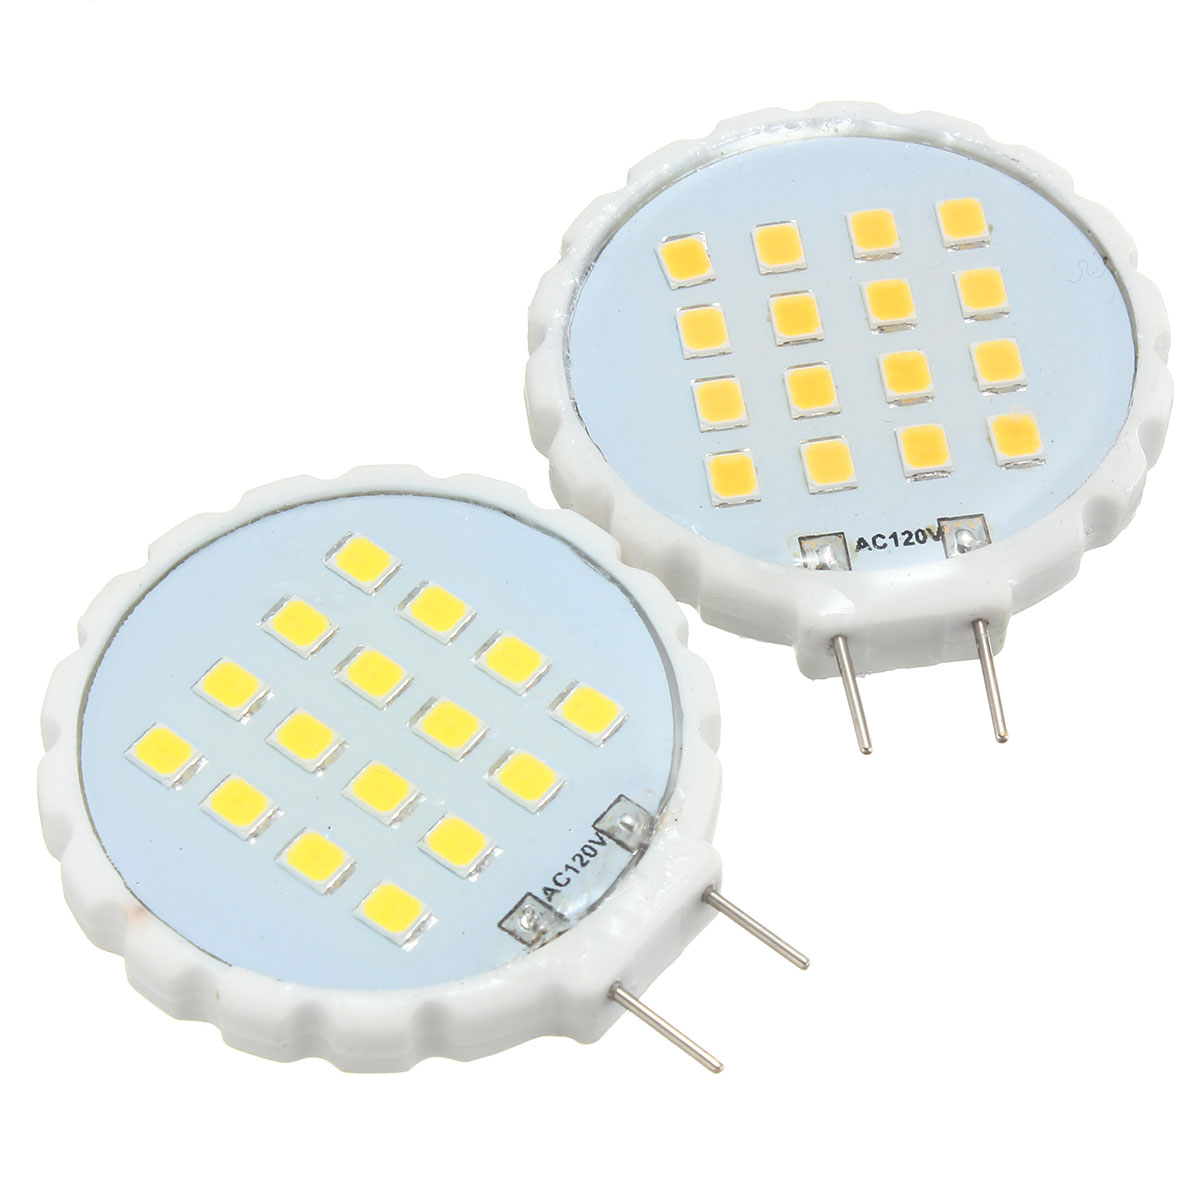 g8 1 3w 16 smd 2835 led pure white warm white ceramic. Black Bedroom Furniture Sets. Home Design Ideas